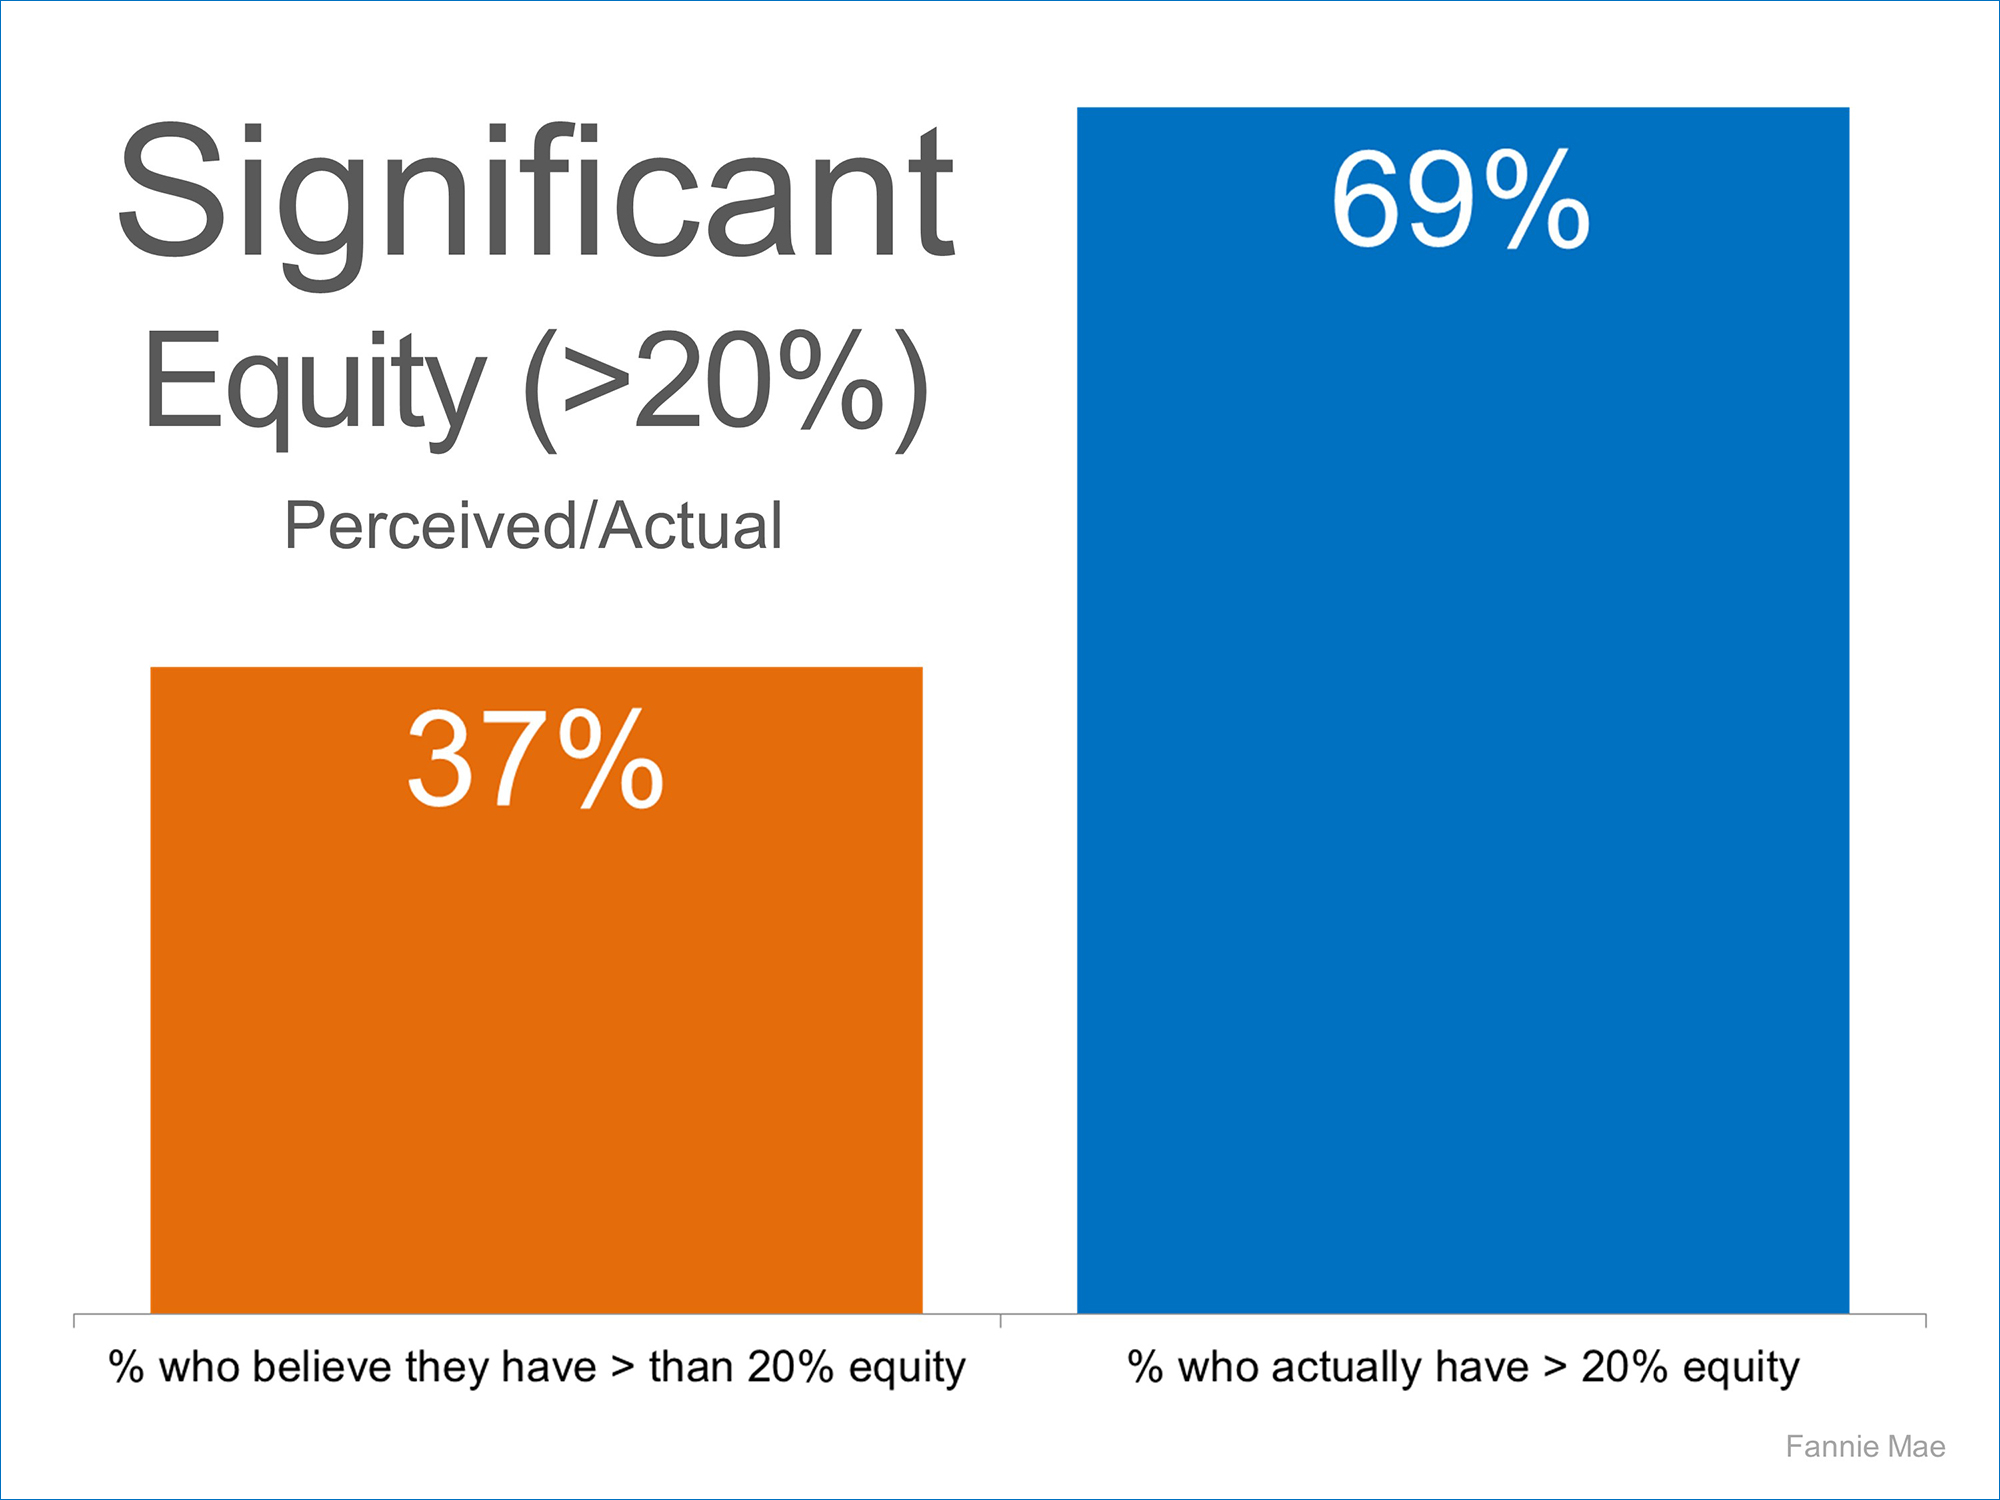 Significant Equity   Simplifying The Market